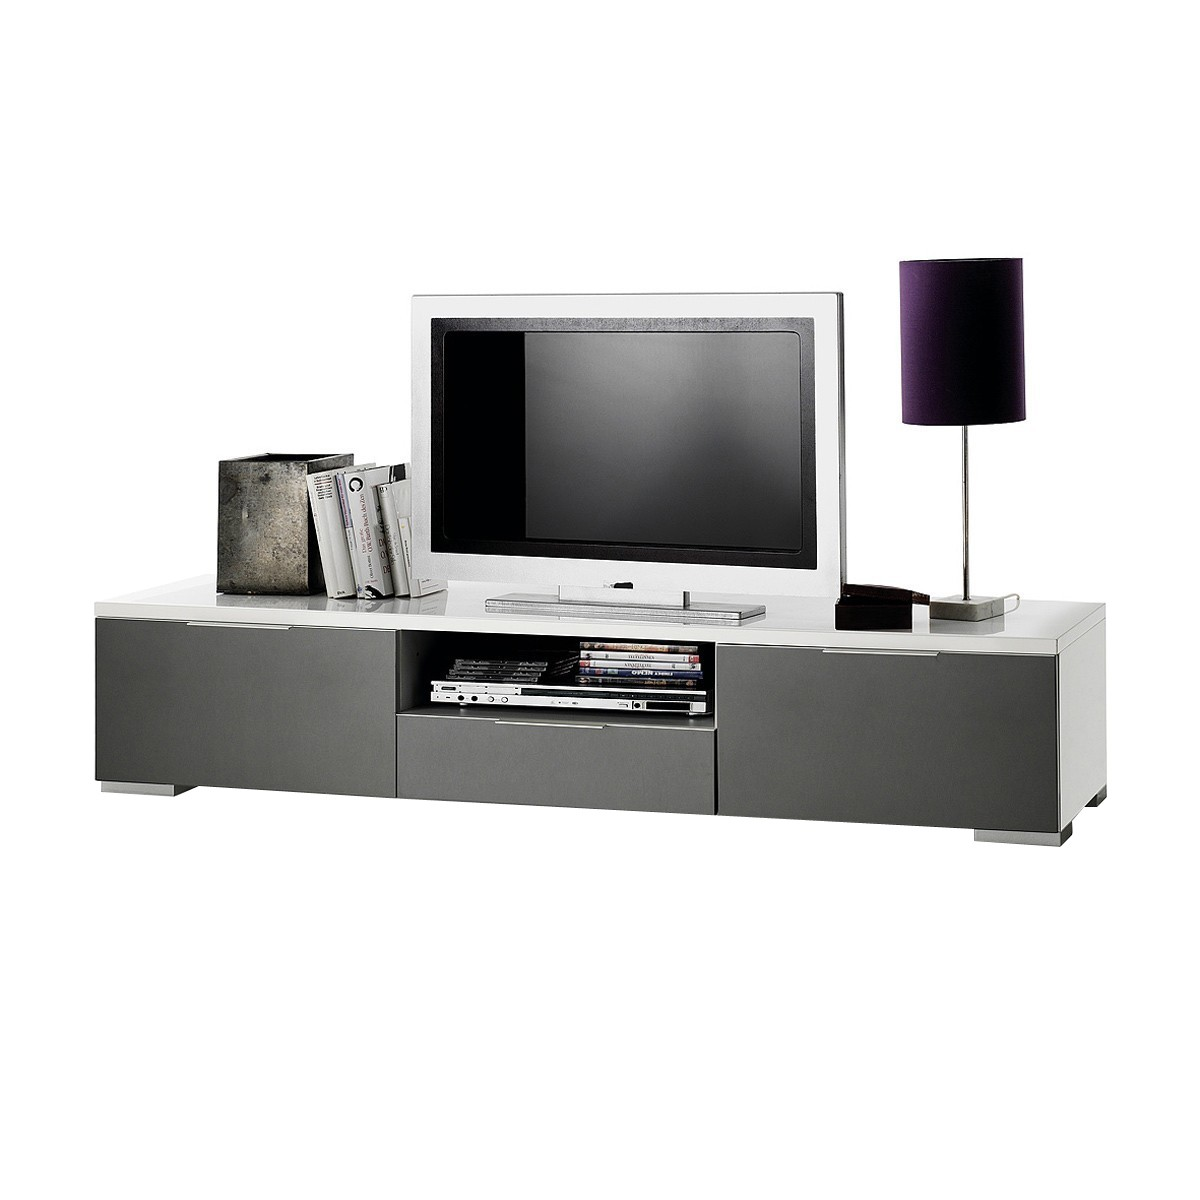 lowboard viva 180cm in wei hochglanz lack grau. Black Bedroom Furniture Sets. Home Design Ideas